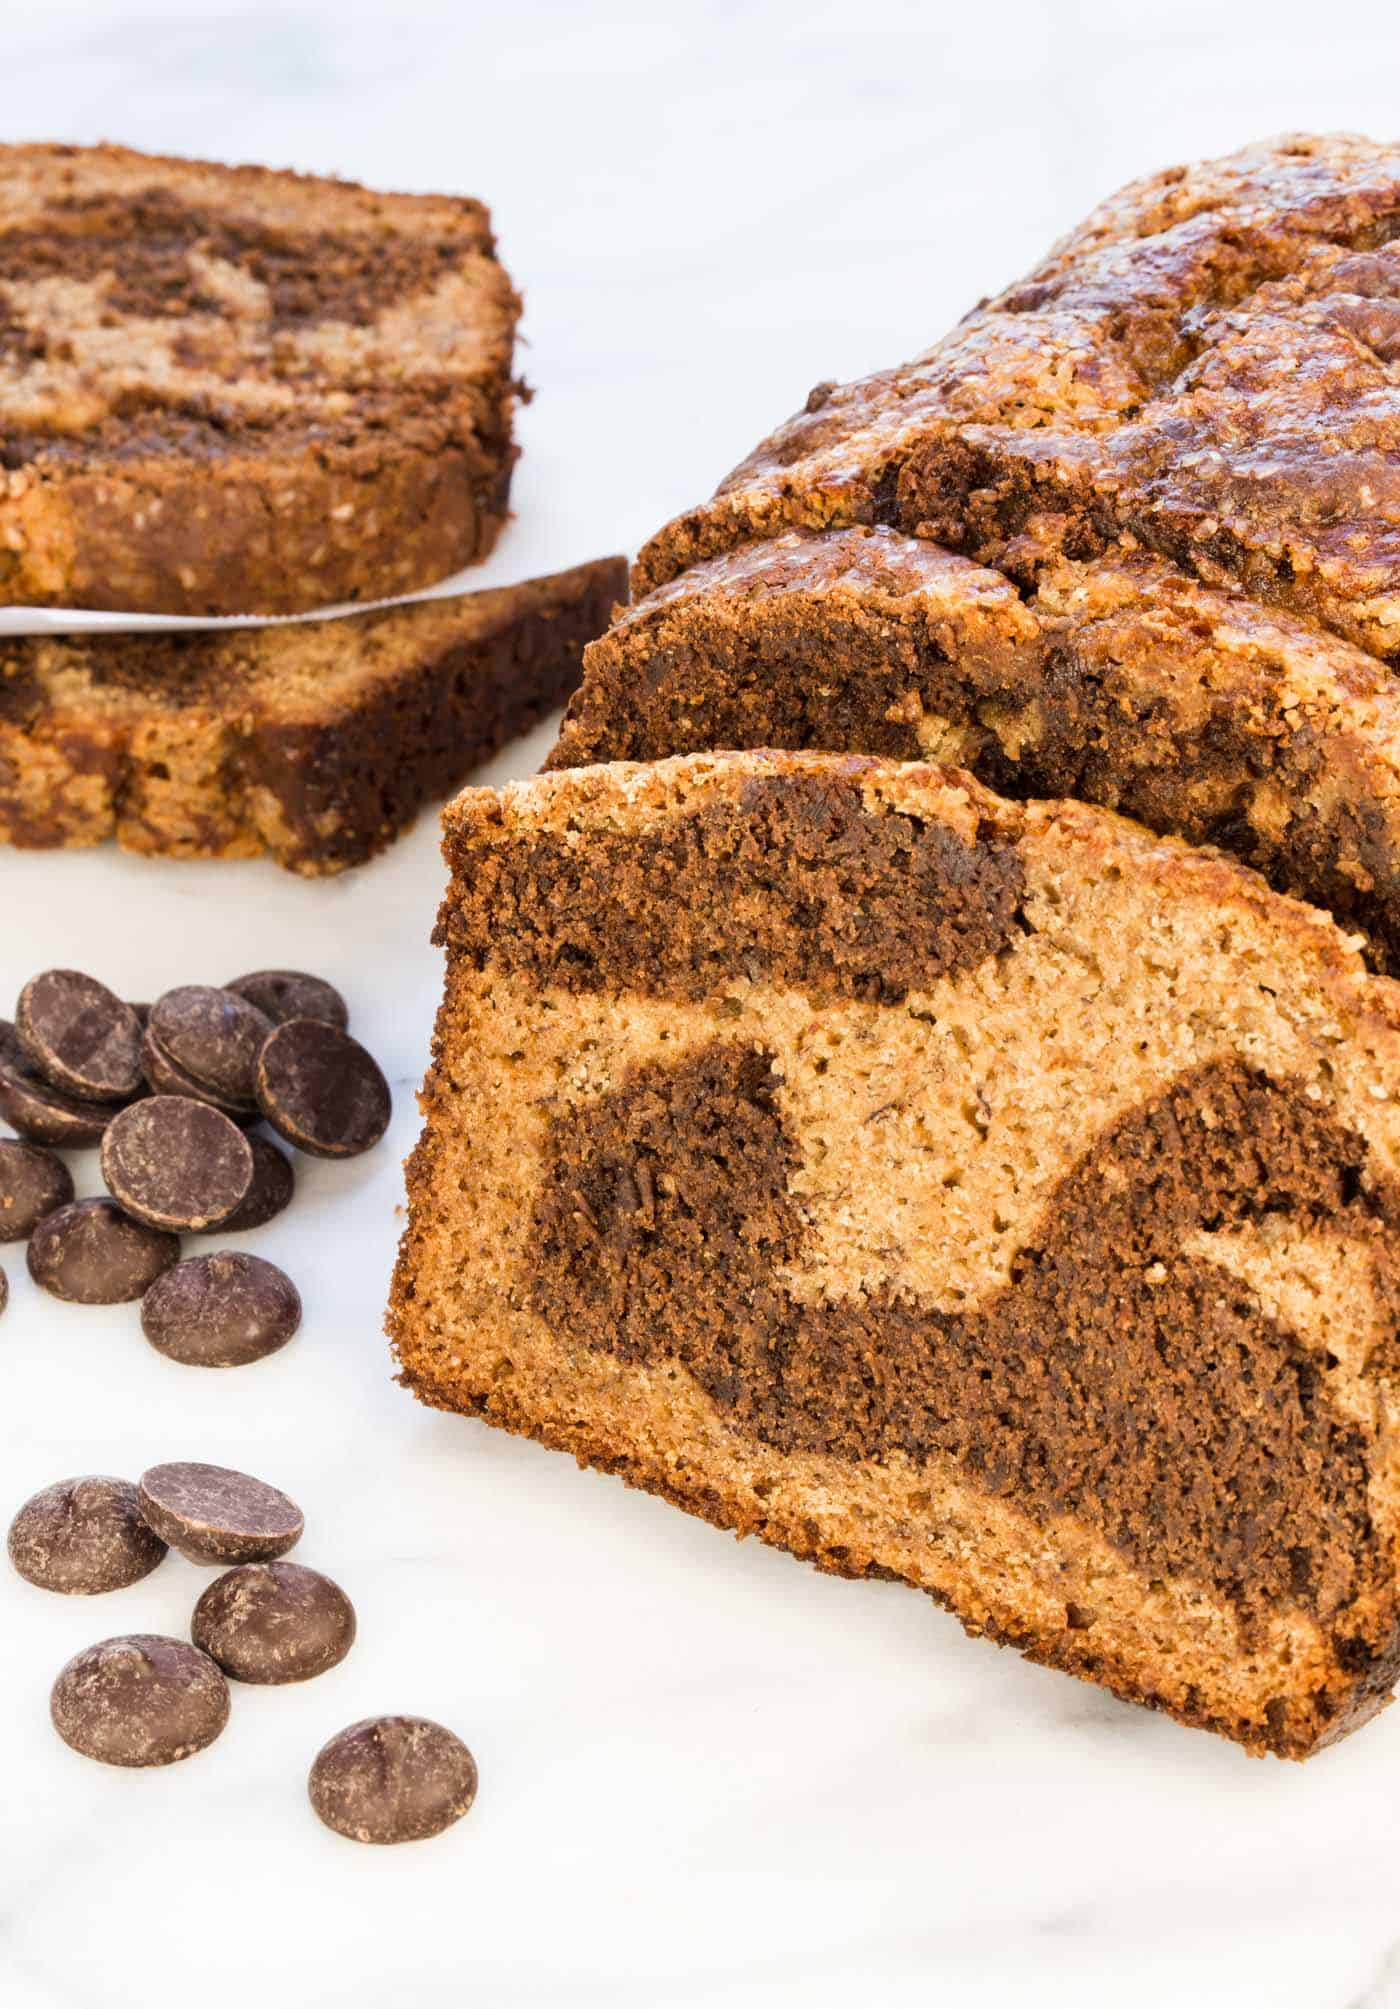 Chocolate marbled banana bread recipe forumfinder Images